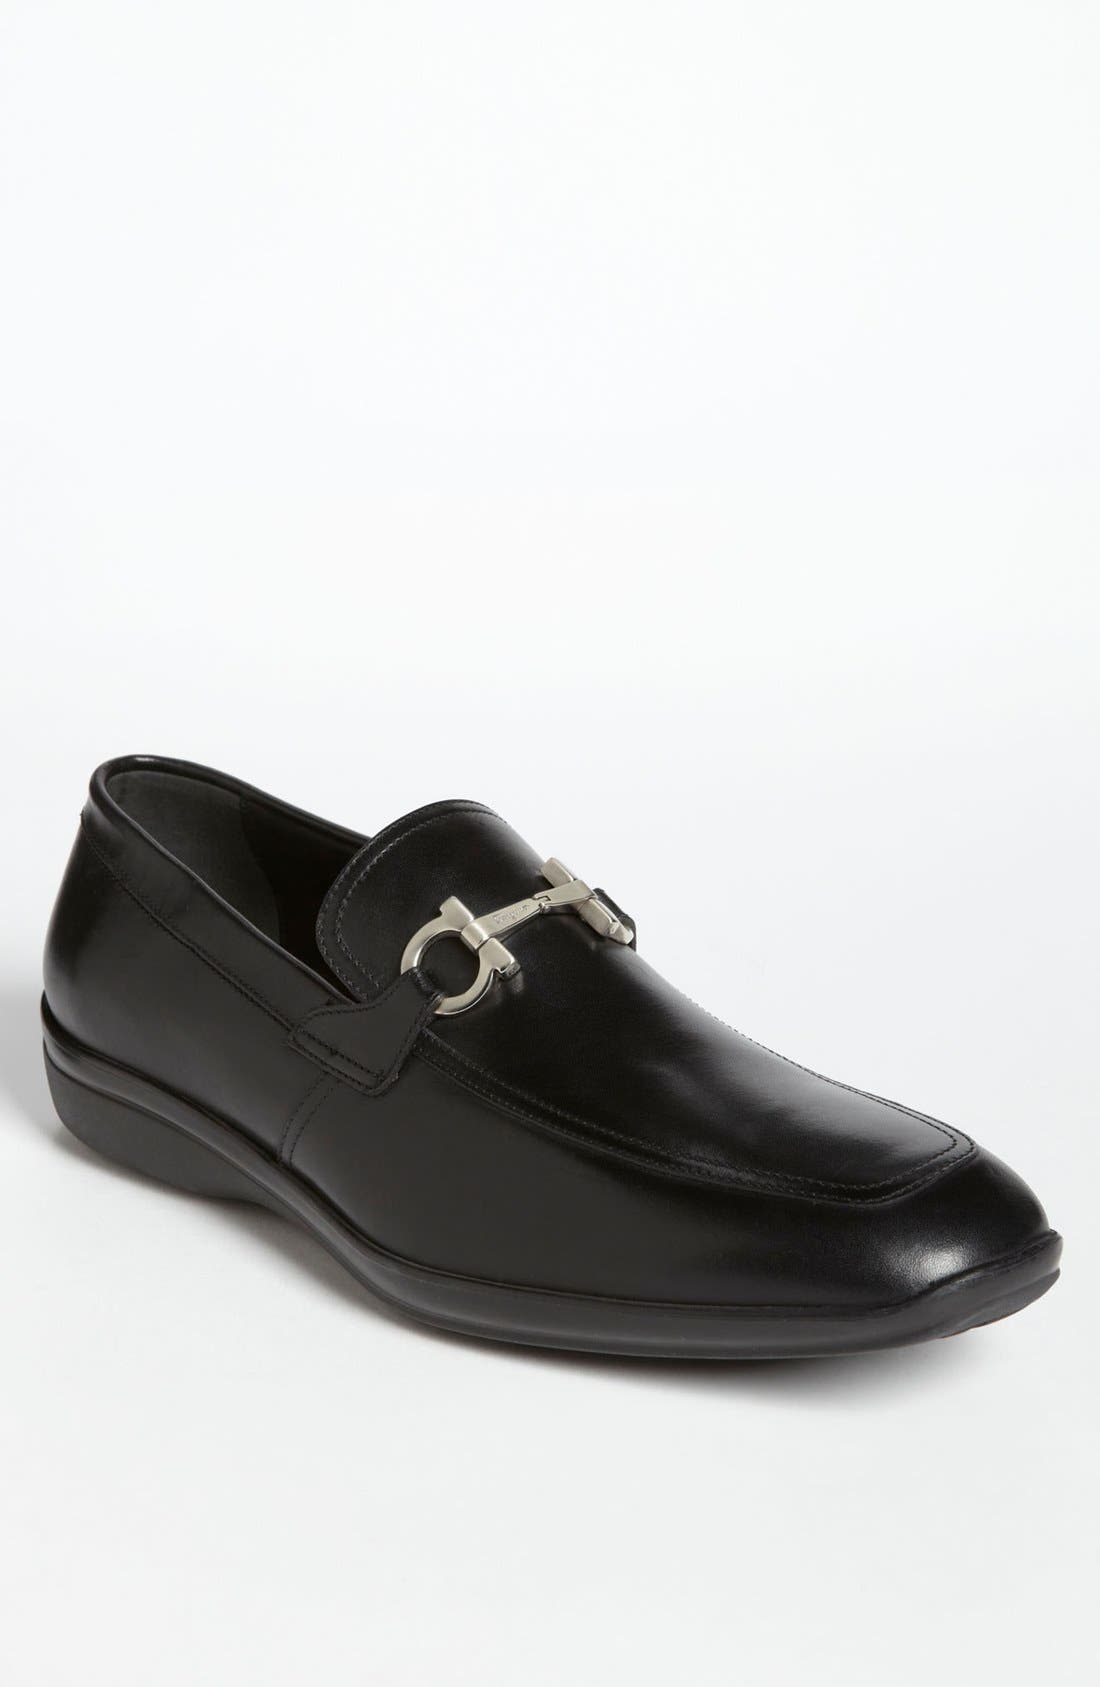 Main Image - Salvatore Ferragamo 'Simply' Bit Loafer